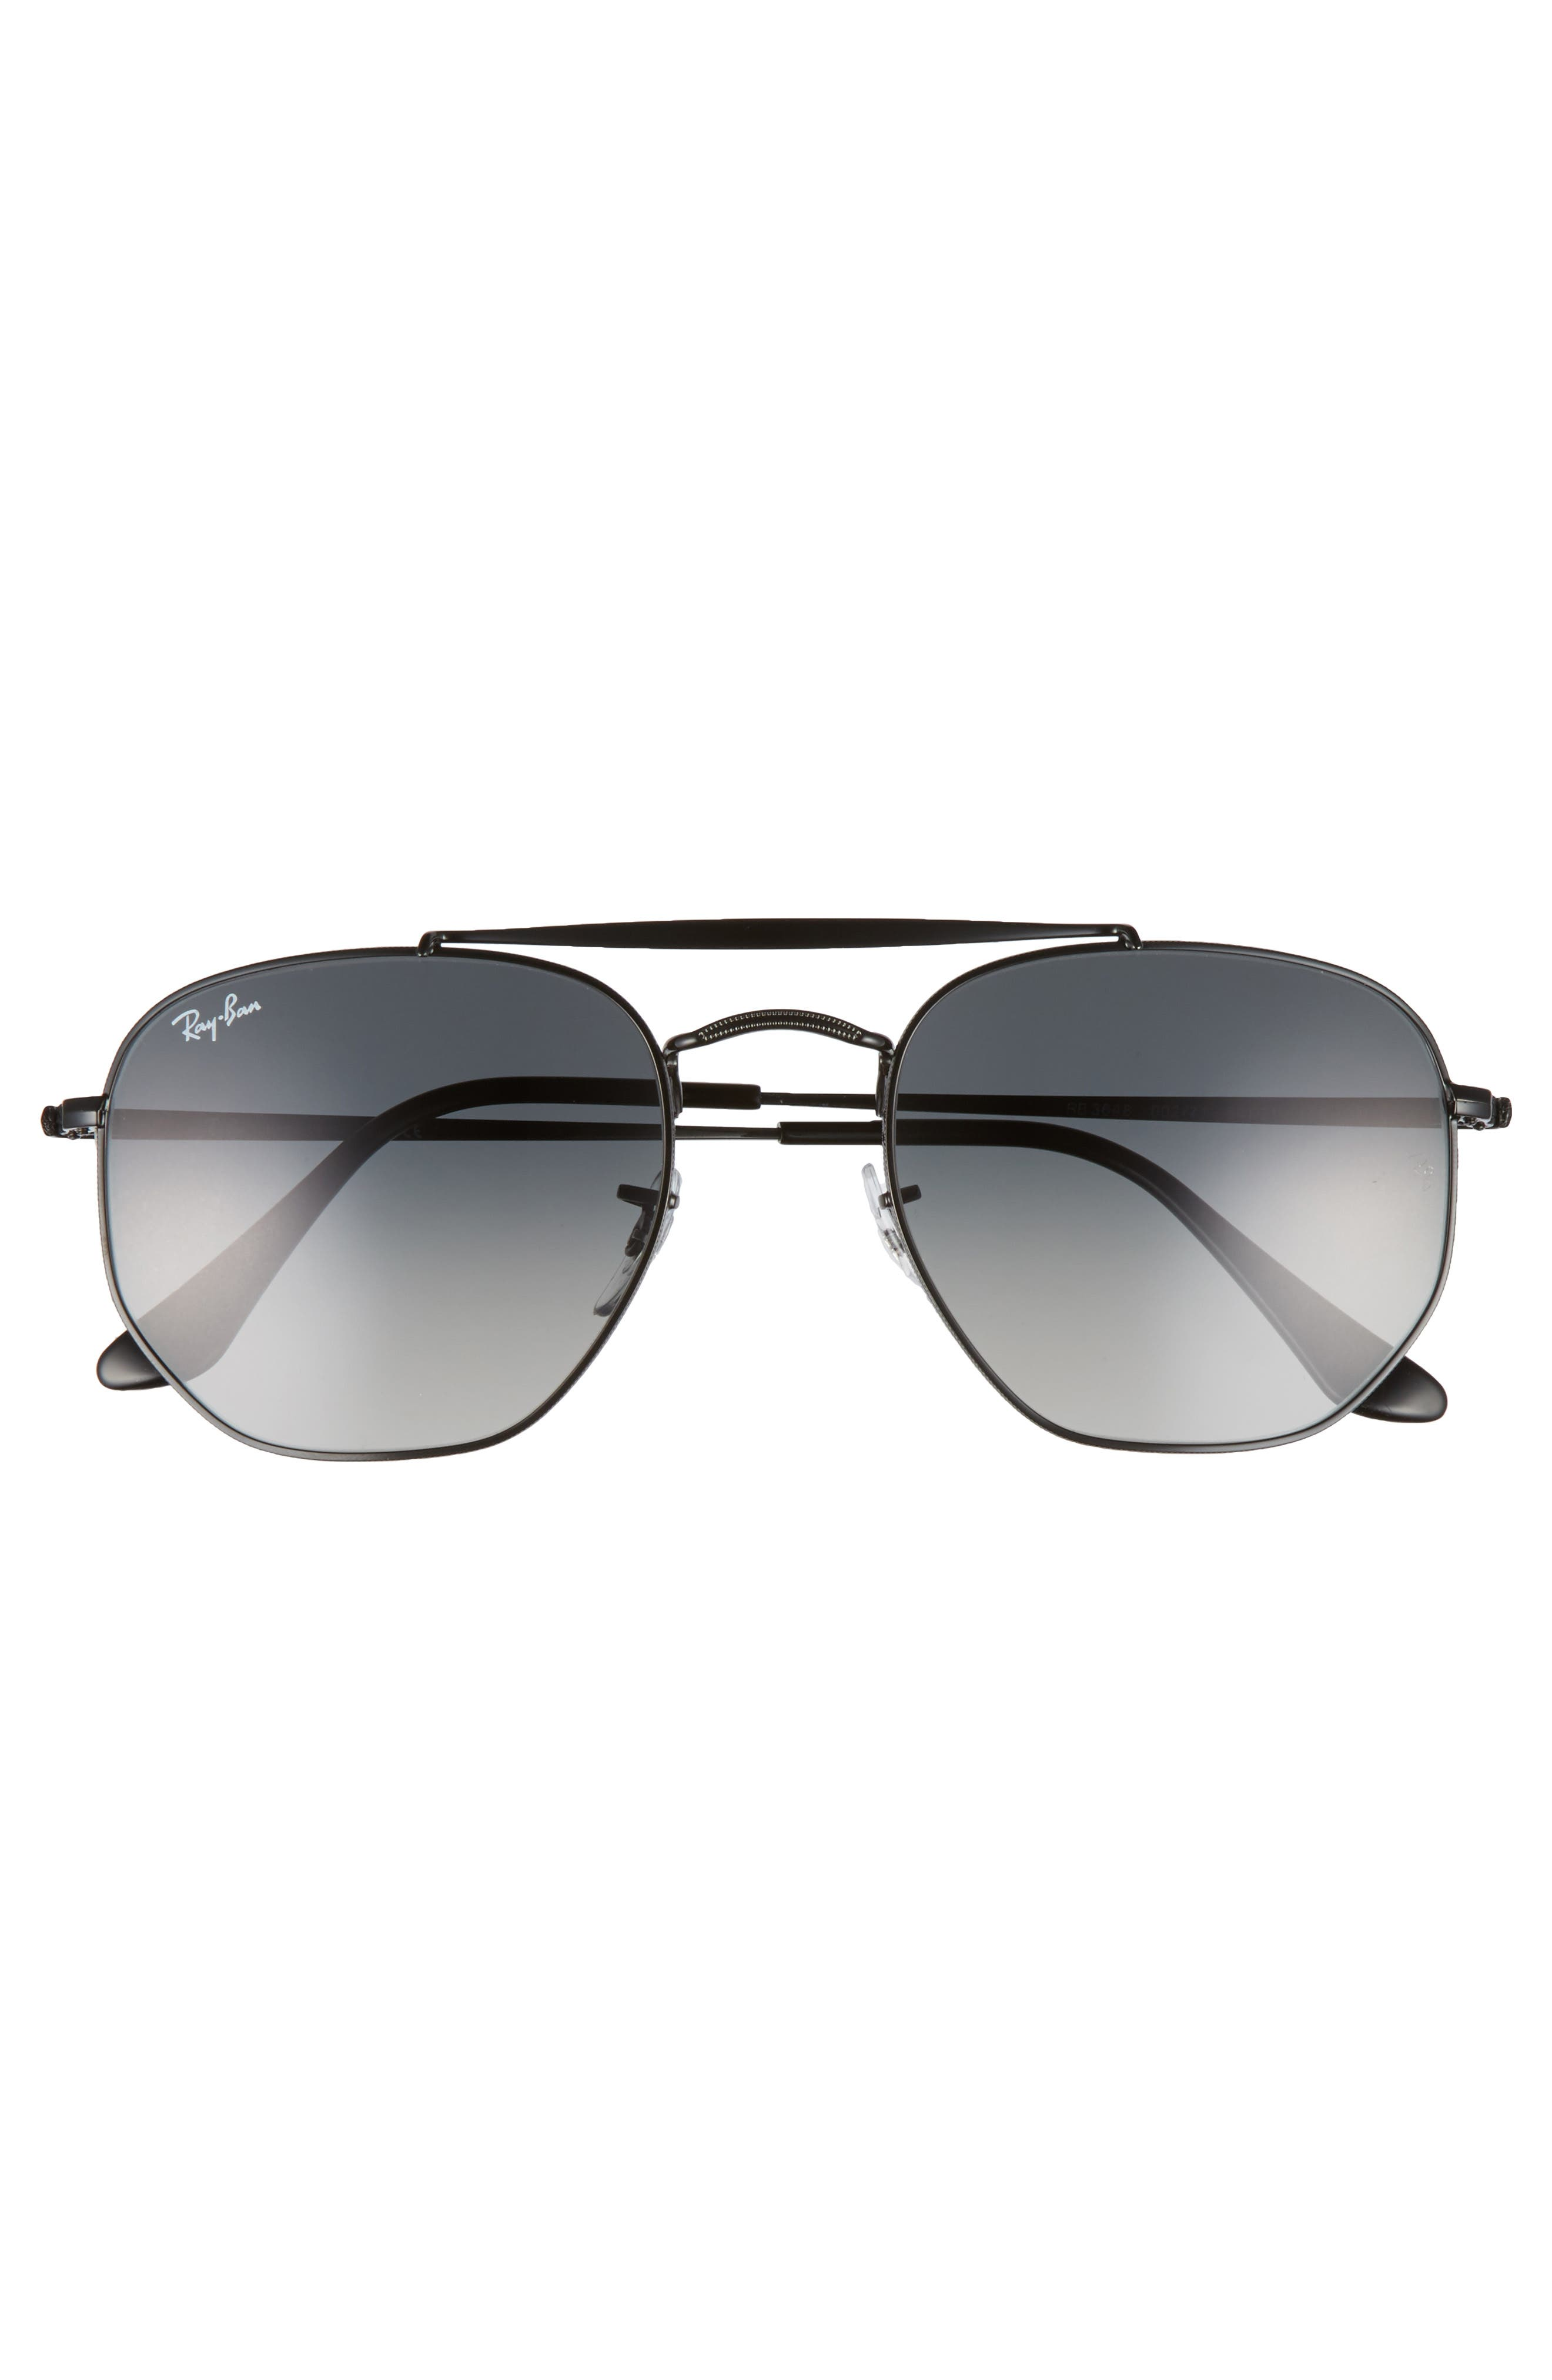 54mm Gradient Sunglasses,                             Alternate thumbnail 3, color,                             001